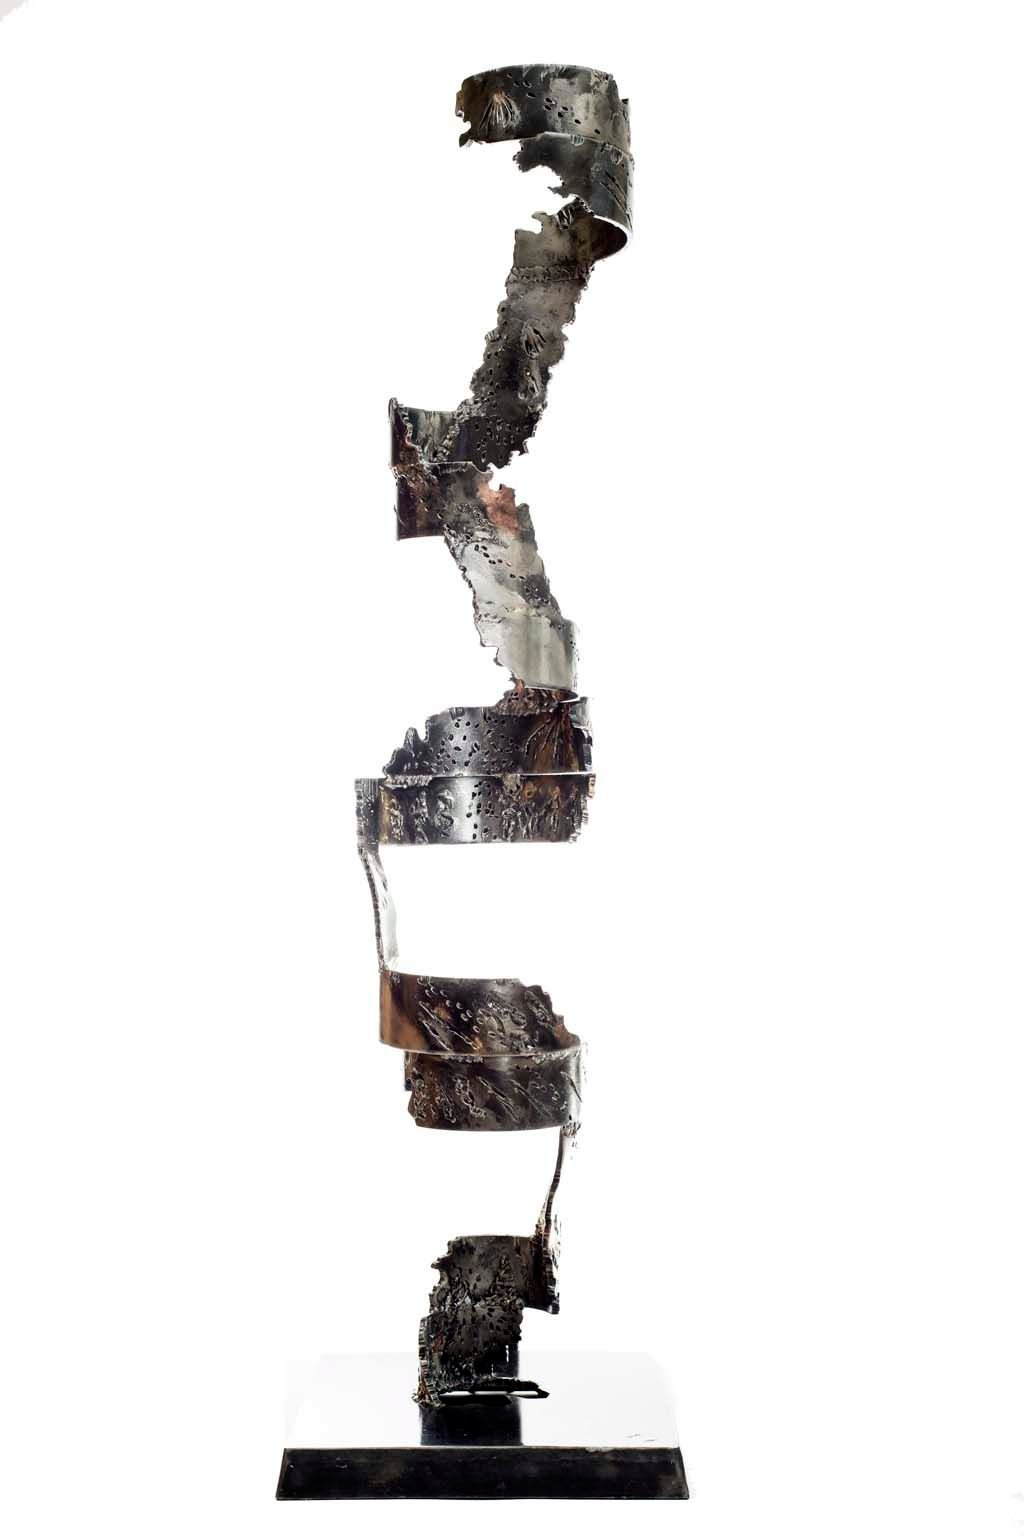 Insights IV | 2013 | Iron & brass sculpture | 148x40x40 cm | Rami Ater